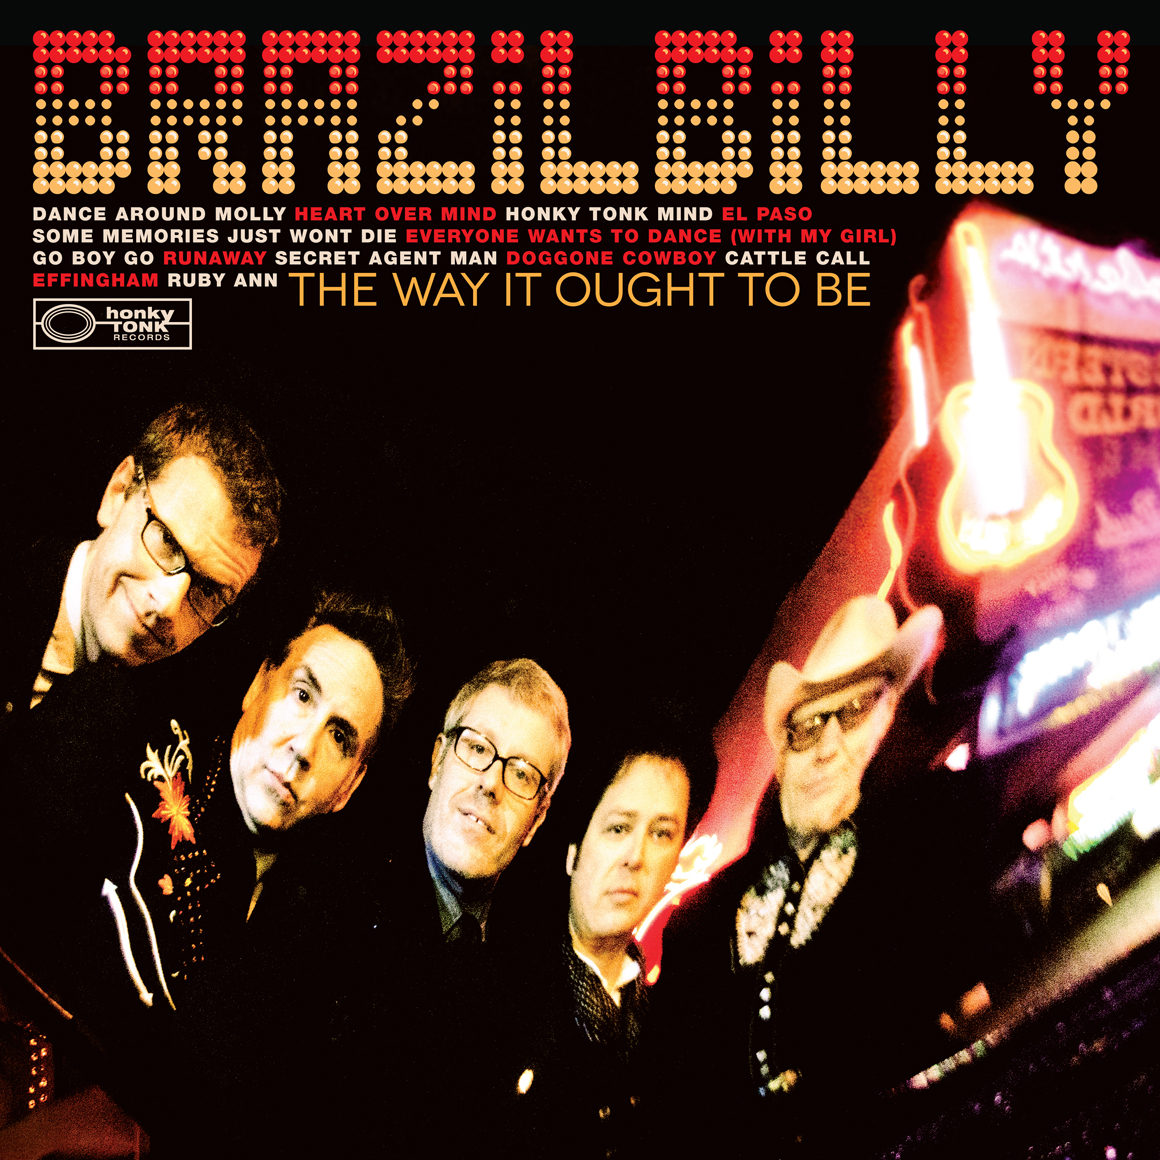 Brazilbilly Vinyl LP (2012). Art Direction & Packaging Design. We shot this picture outside the legendary Robert's Western World in Nashville between rain bursts on a quiet Monday night on the strip. This shot is actually a reflection of the band not a direct shot. Notice the Robert's sign which reads backwards. We used singer Jesse Lee's 1955 Cadillac's trunk lid, parked it outside of Robert's and placed the photographer Stacie Huckeba in a few precarious positions in order to capture the band in a modern twist on the classic old Nashville album covers of the 60s and 70s.